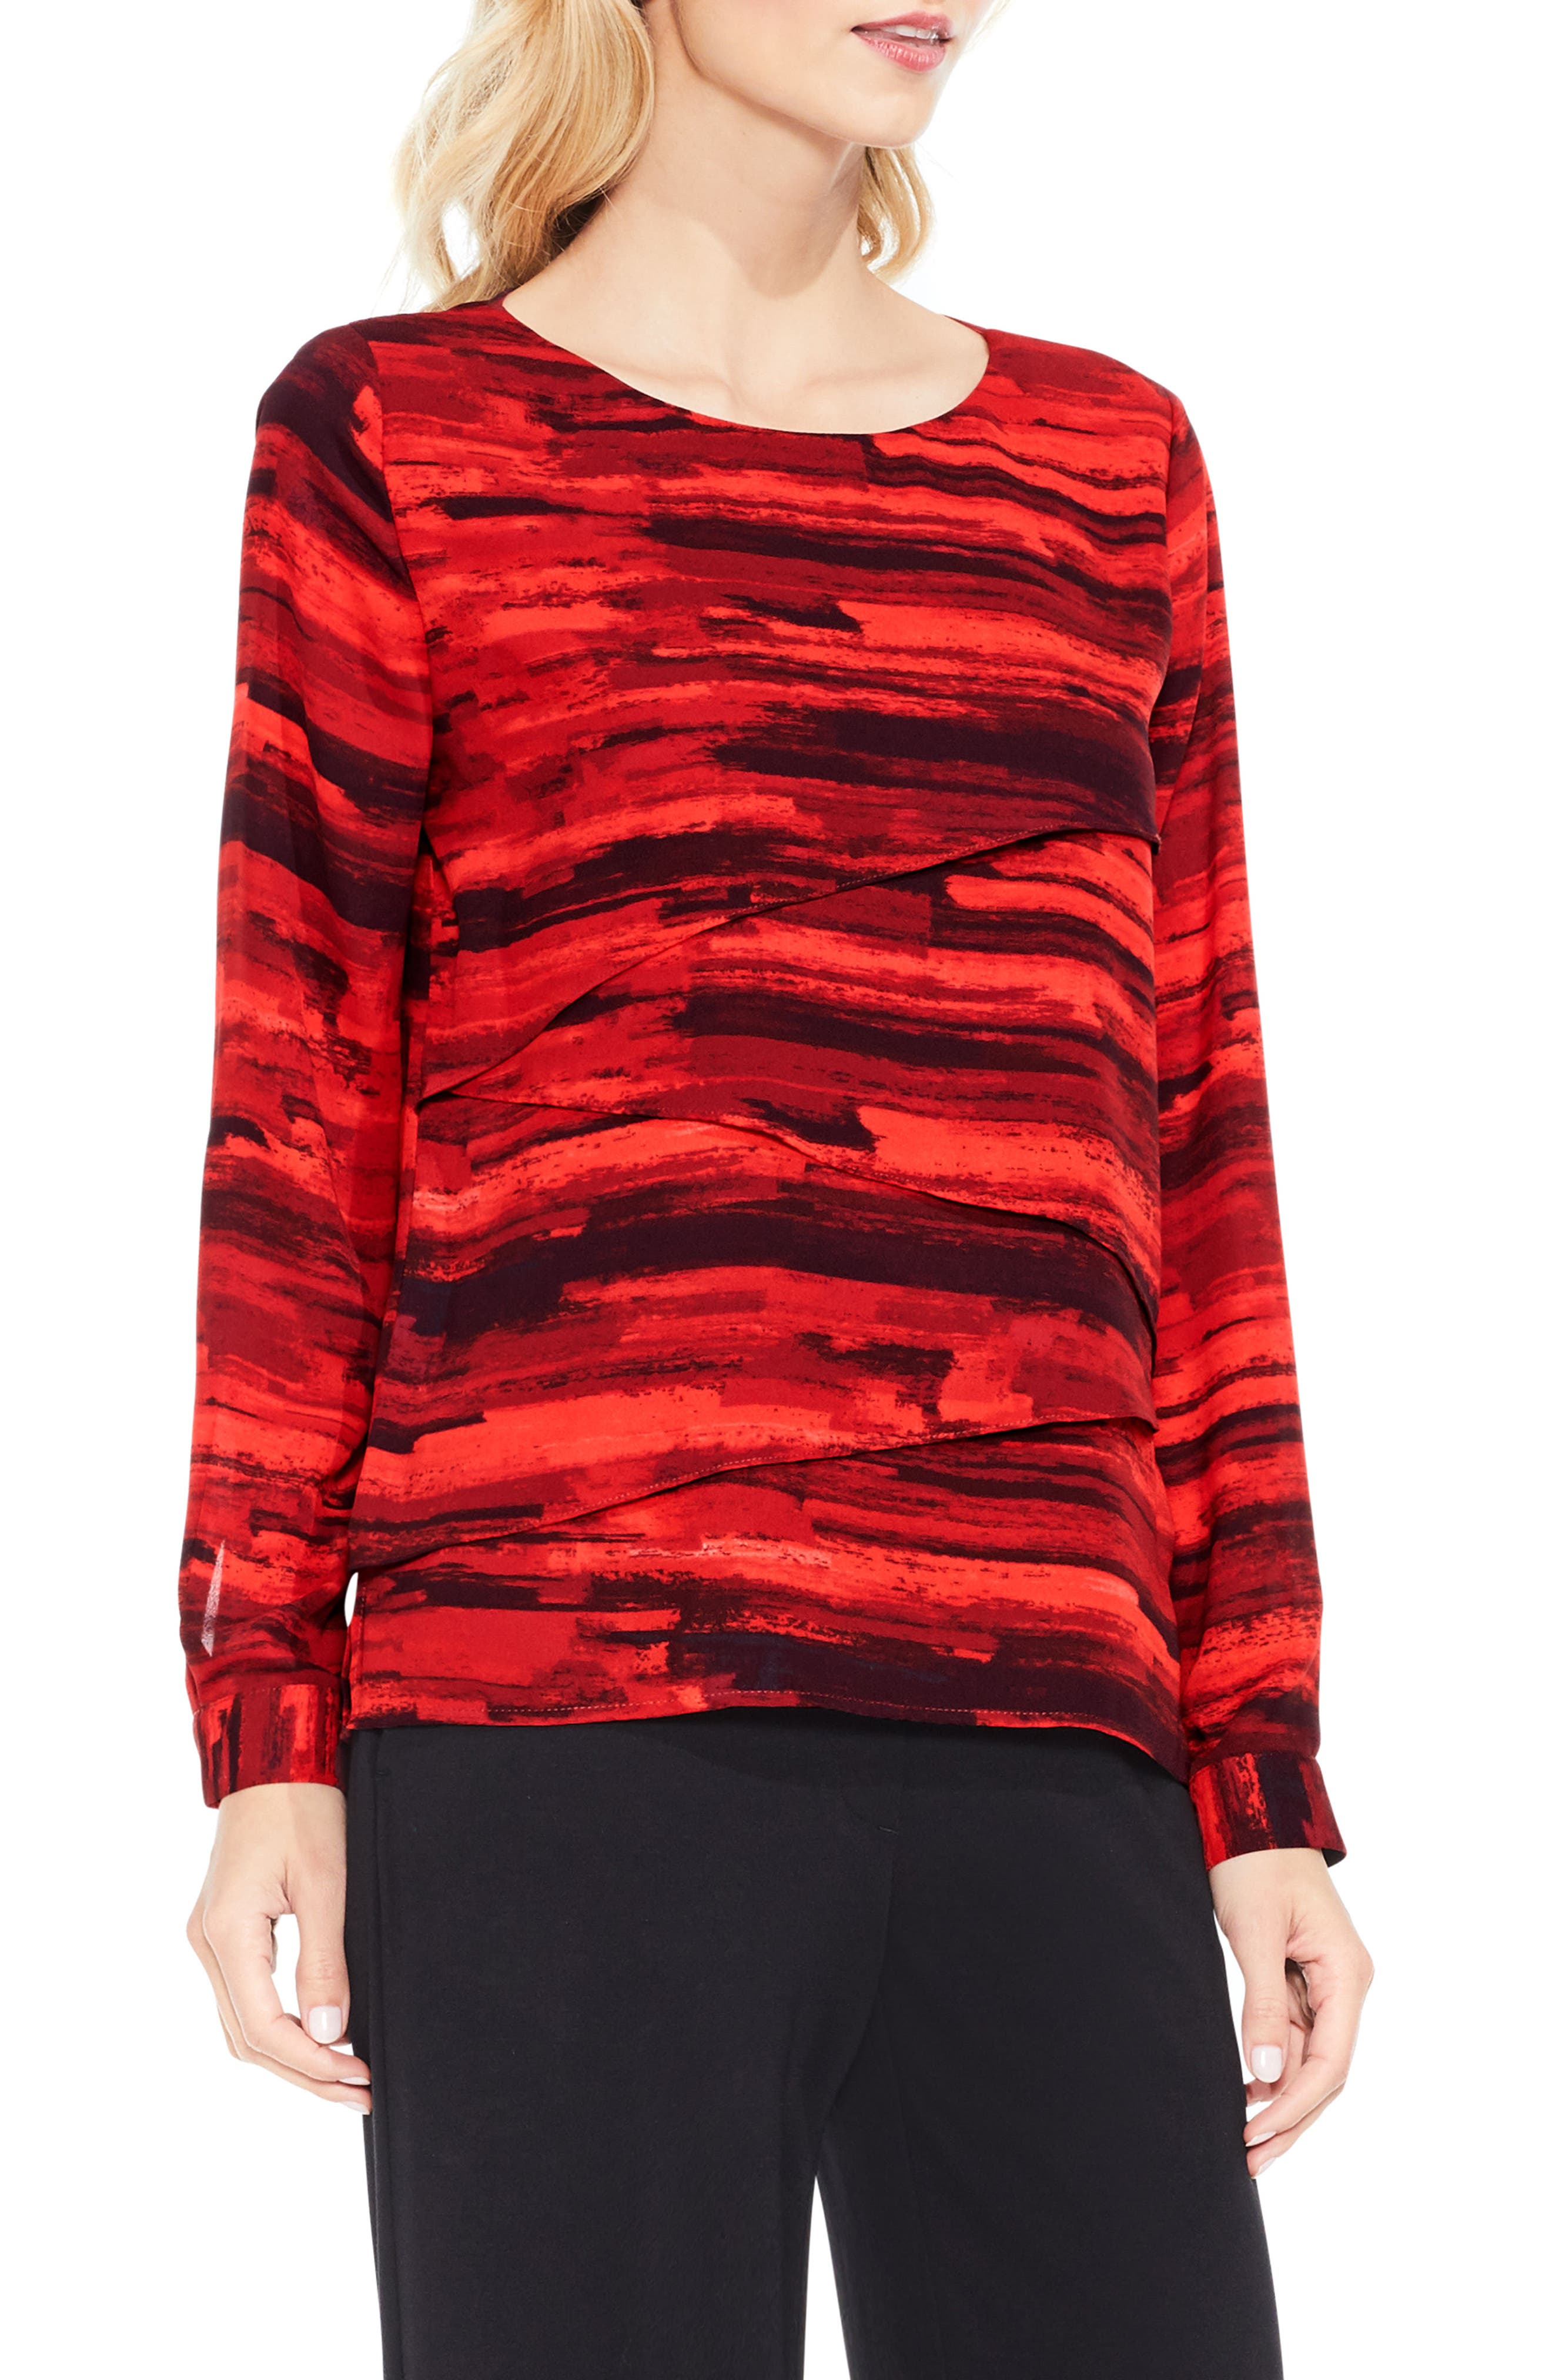 Alternate Image 1 Selected - Vince Camuto Muses Print Tiered Blouse